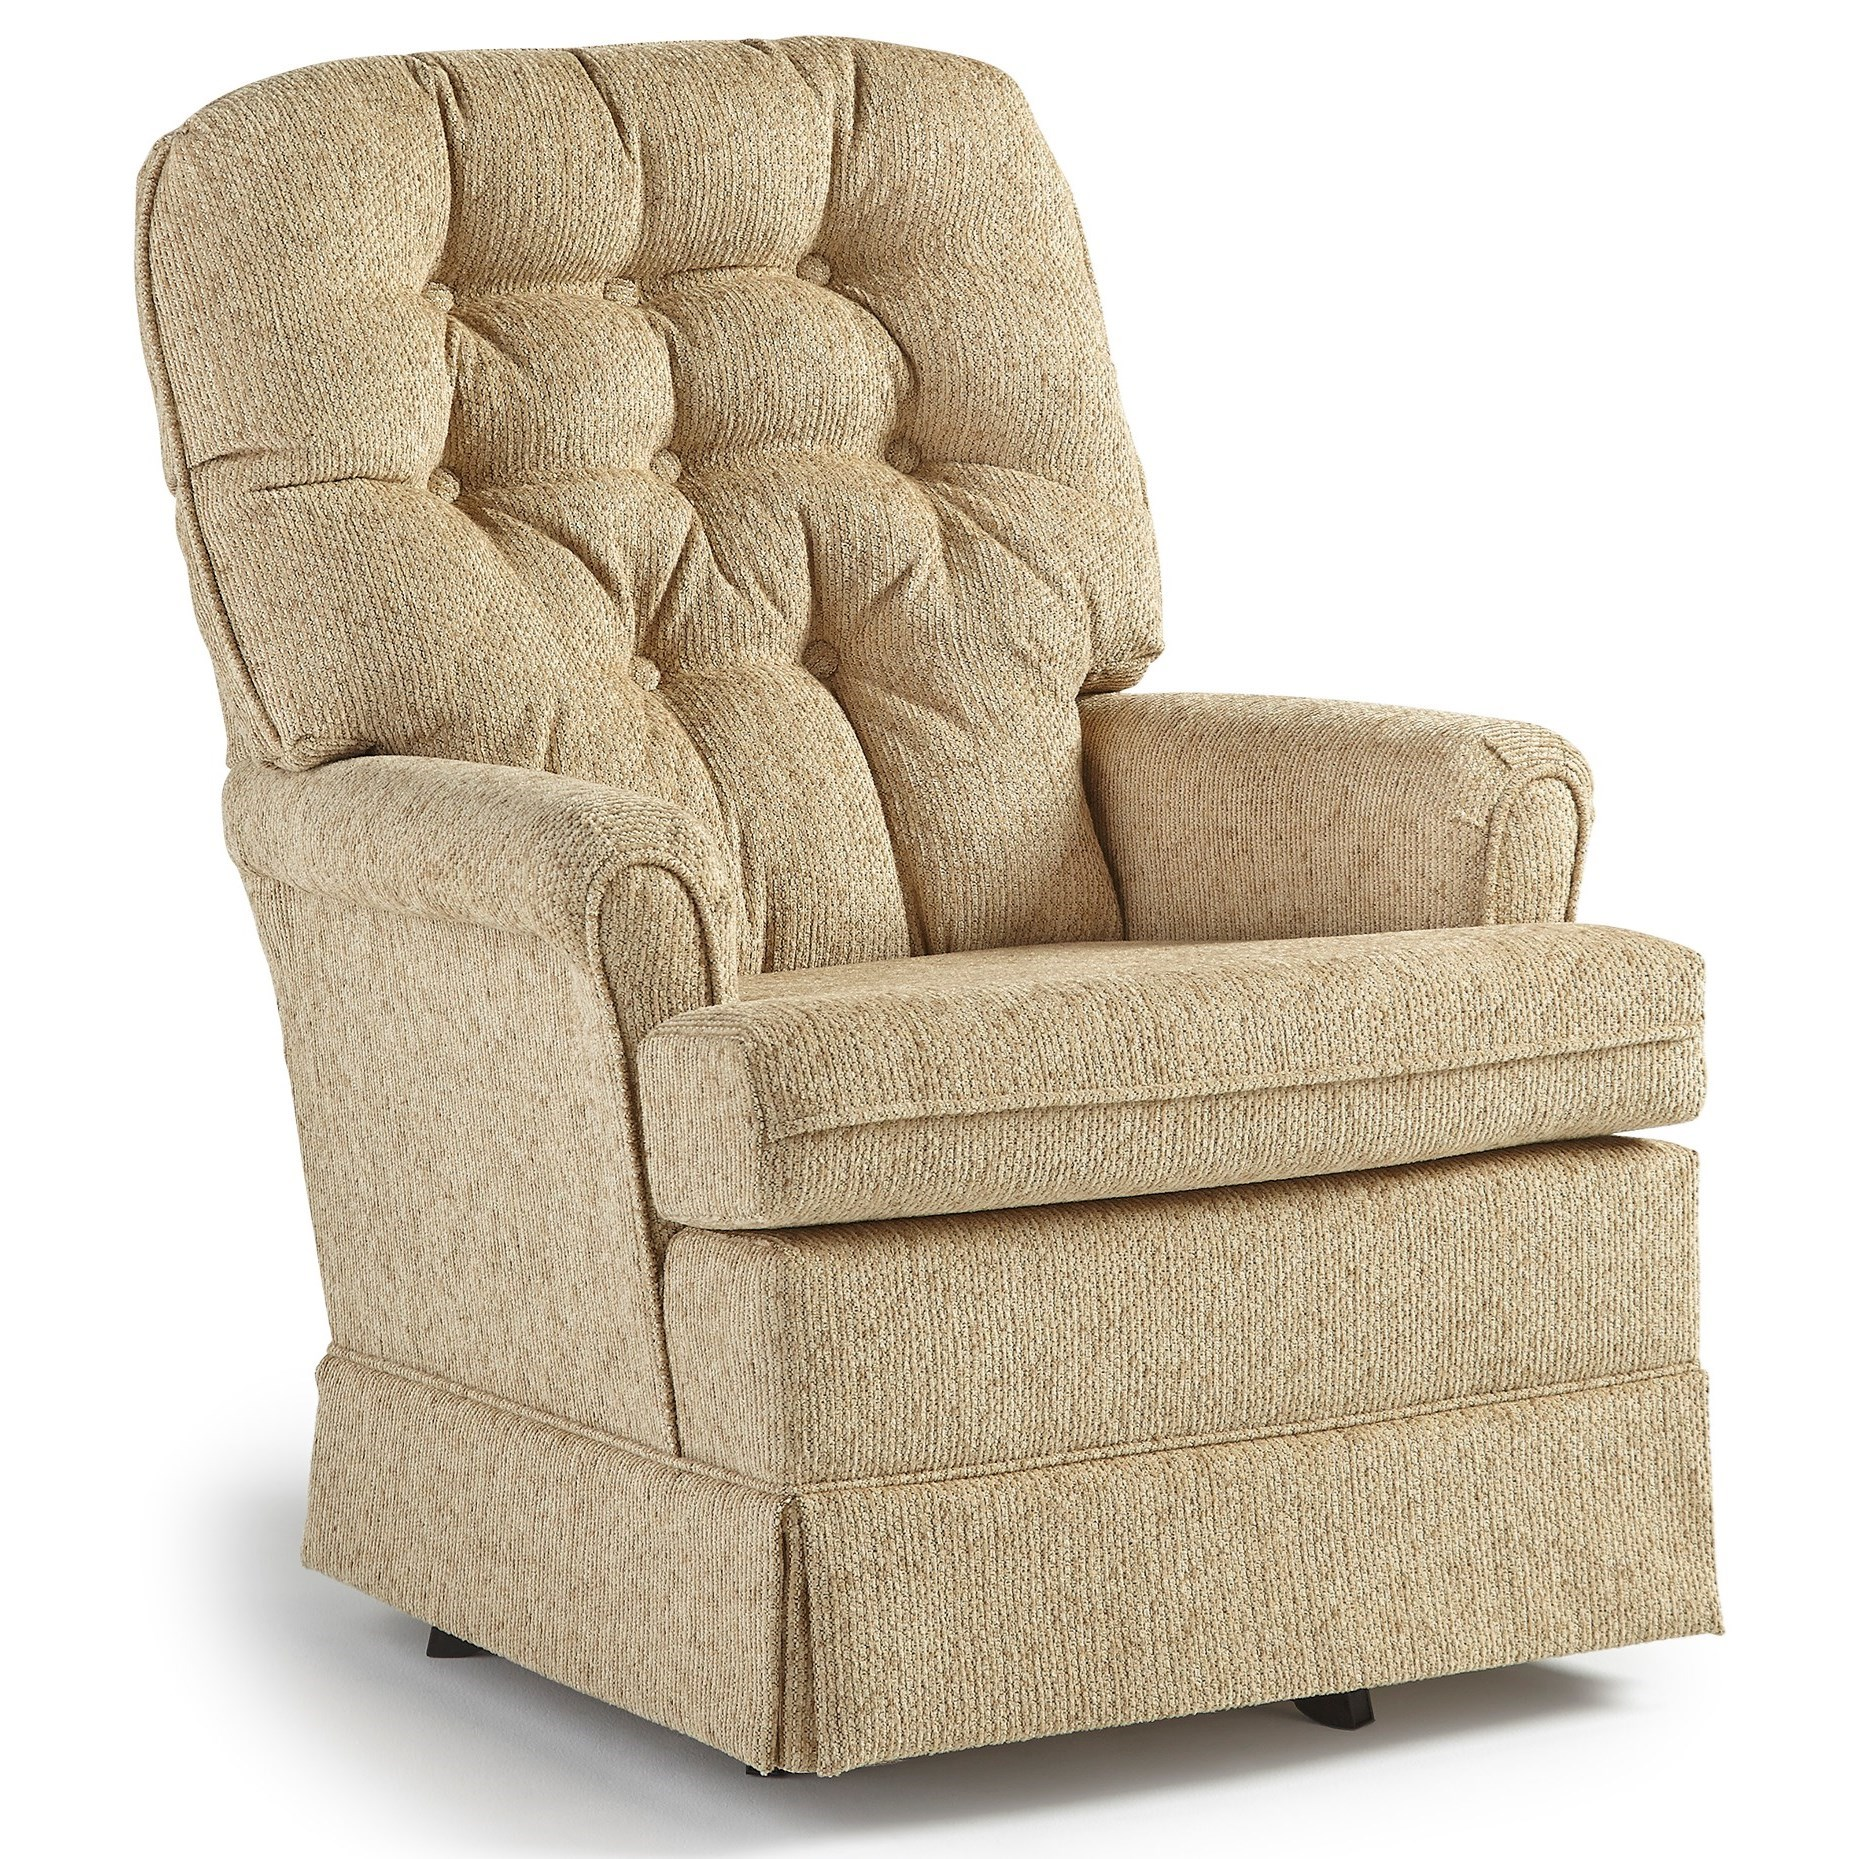 Swivel Rocking Chairs Best Home Furnishings Chairs Swivel Glide Joplin Swivel